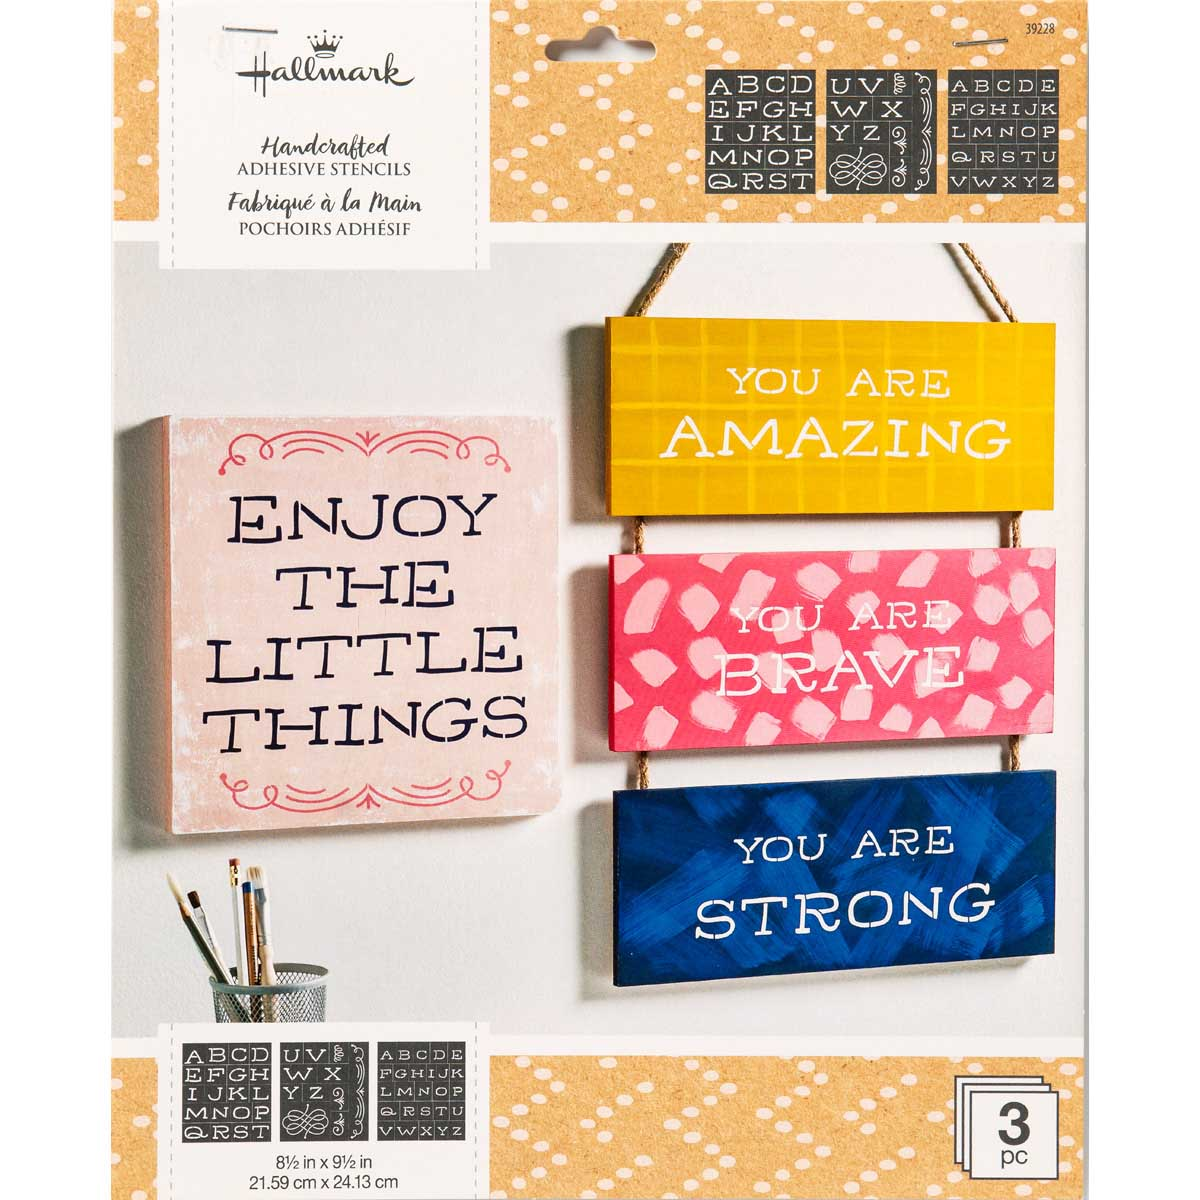 Hallmark Handcrafted Adhesive Stencils - So Happy Font, 8-1/2